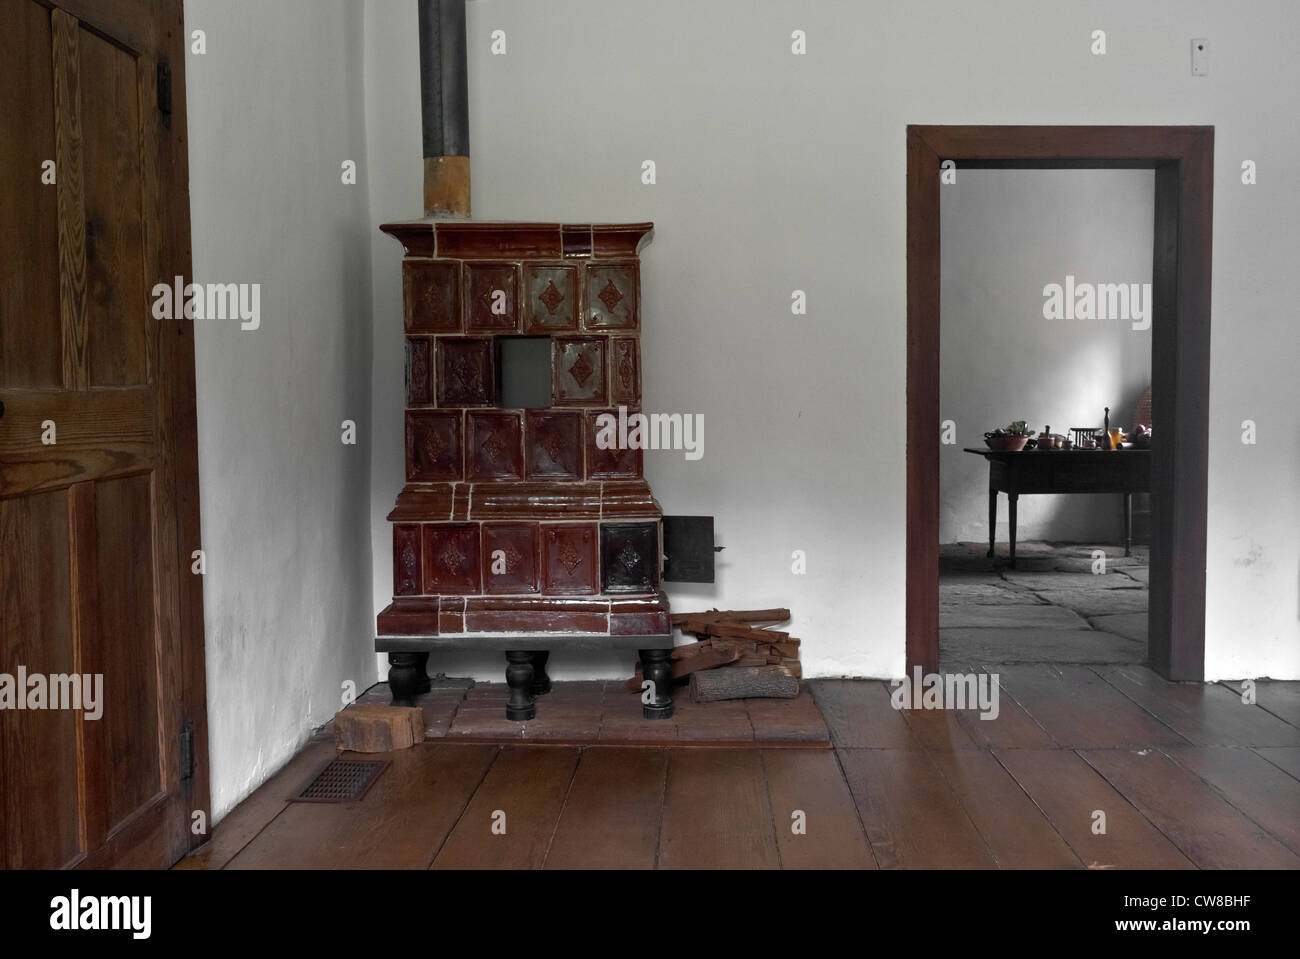 inside Gemeinhaus building 1788. German colonial church with attached minister's living quarters. Frederic Marshall - Stock Image